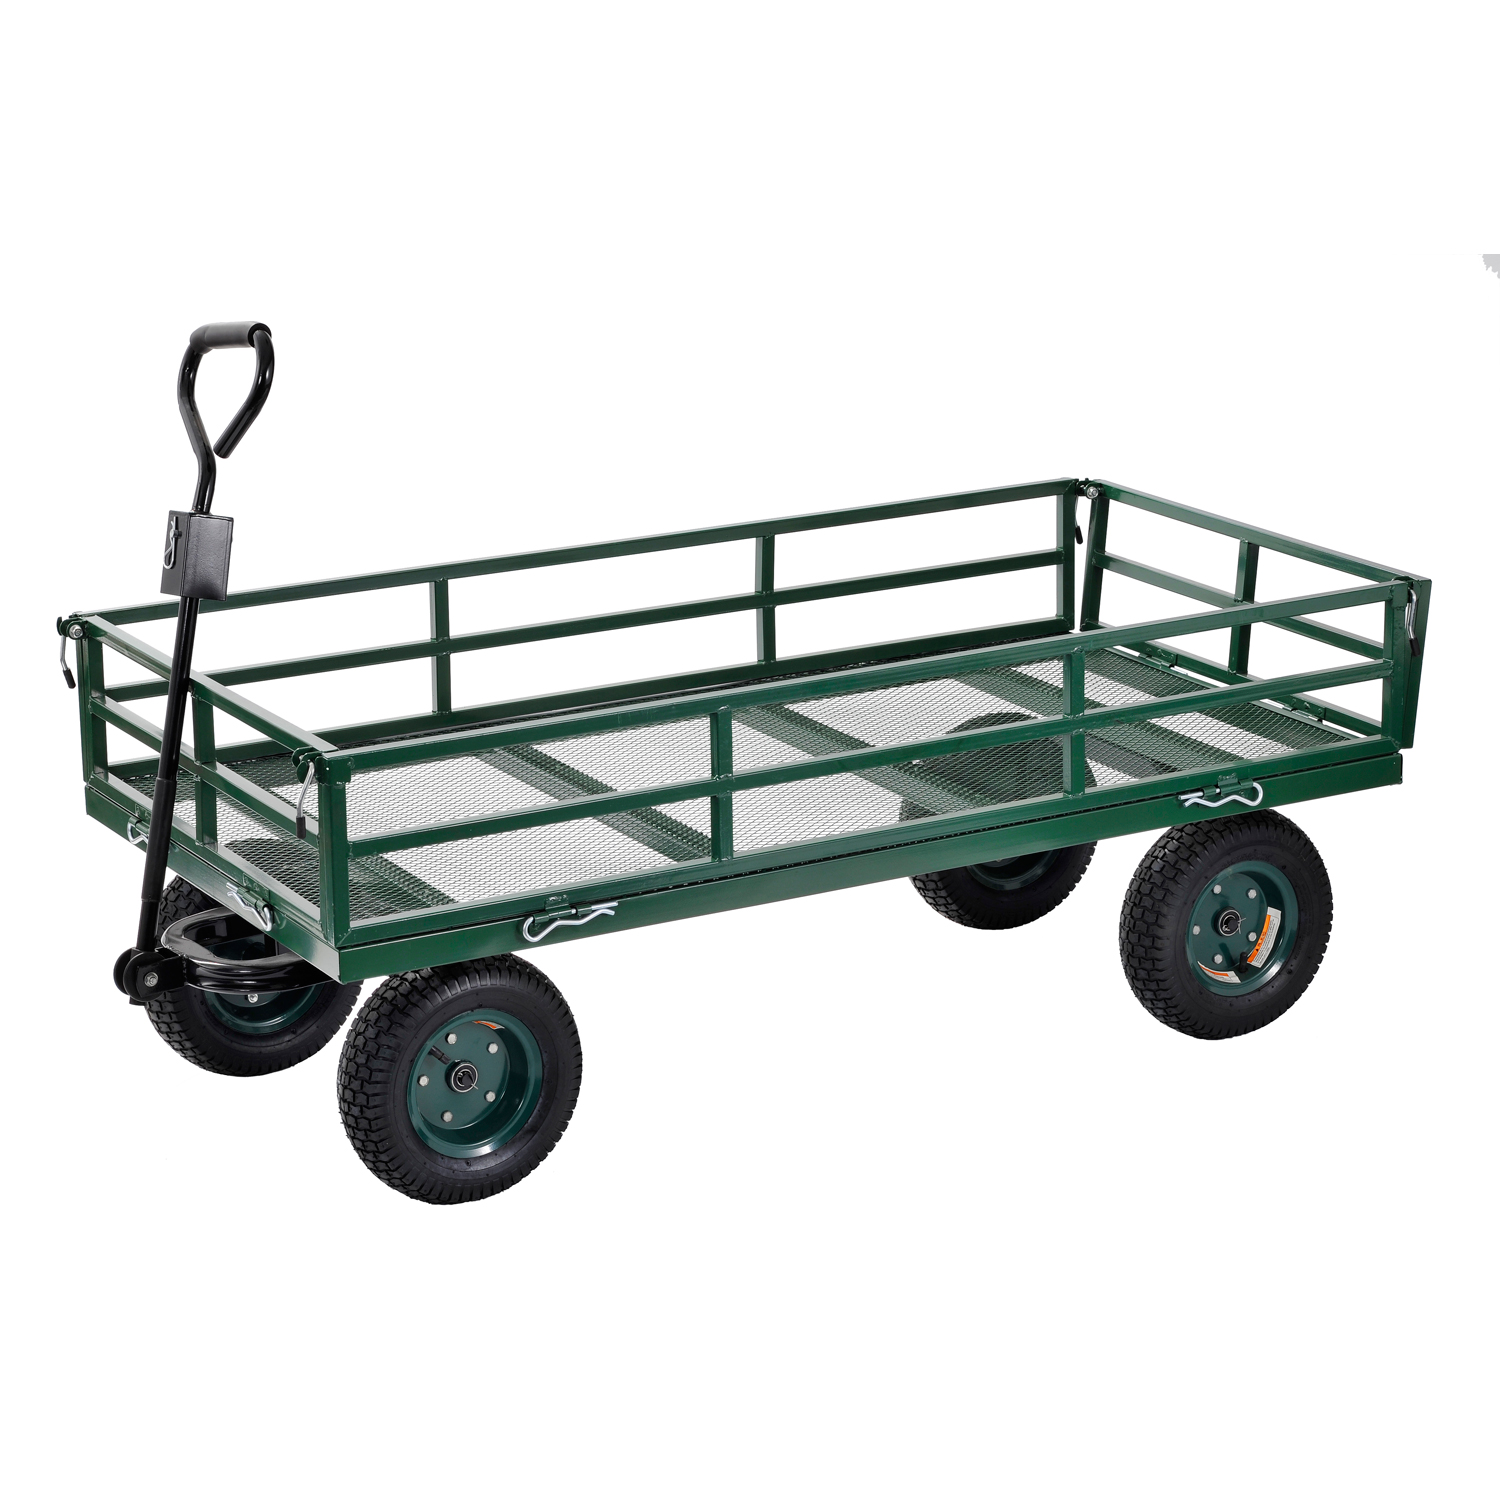 "Sandusky 60"" x 31"" Heavy-Duty Jumbo Crate Wagon, Green by Generic"